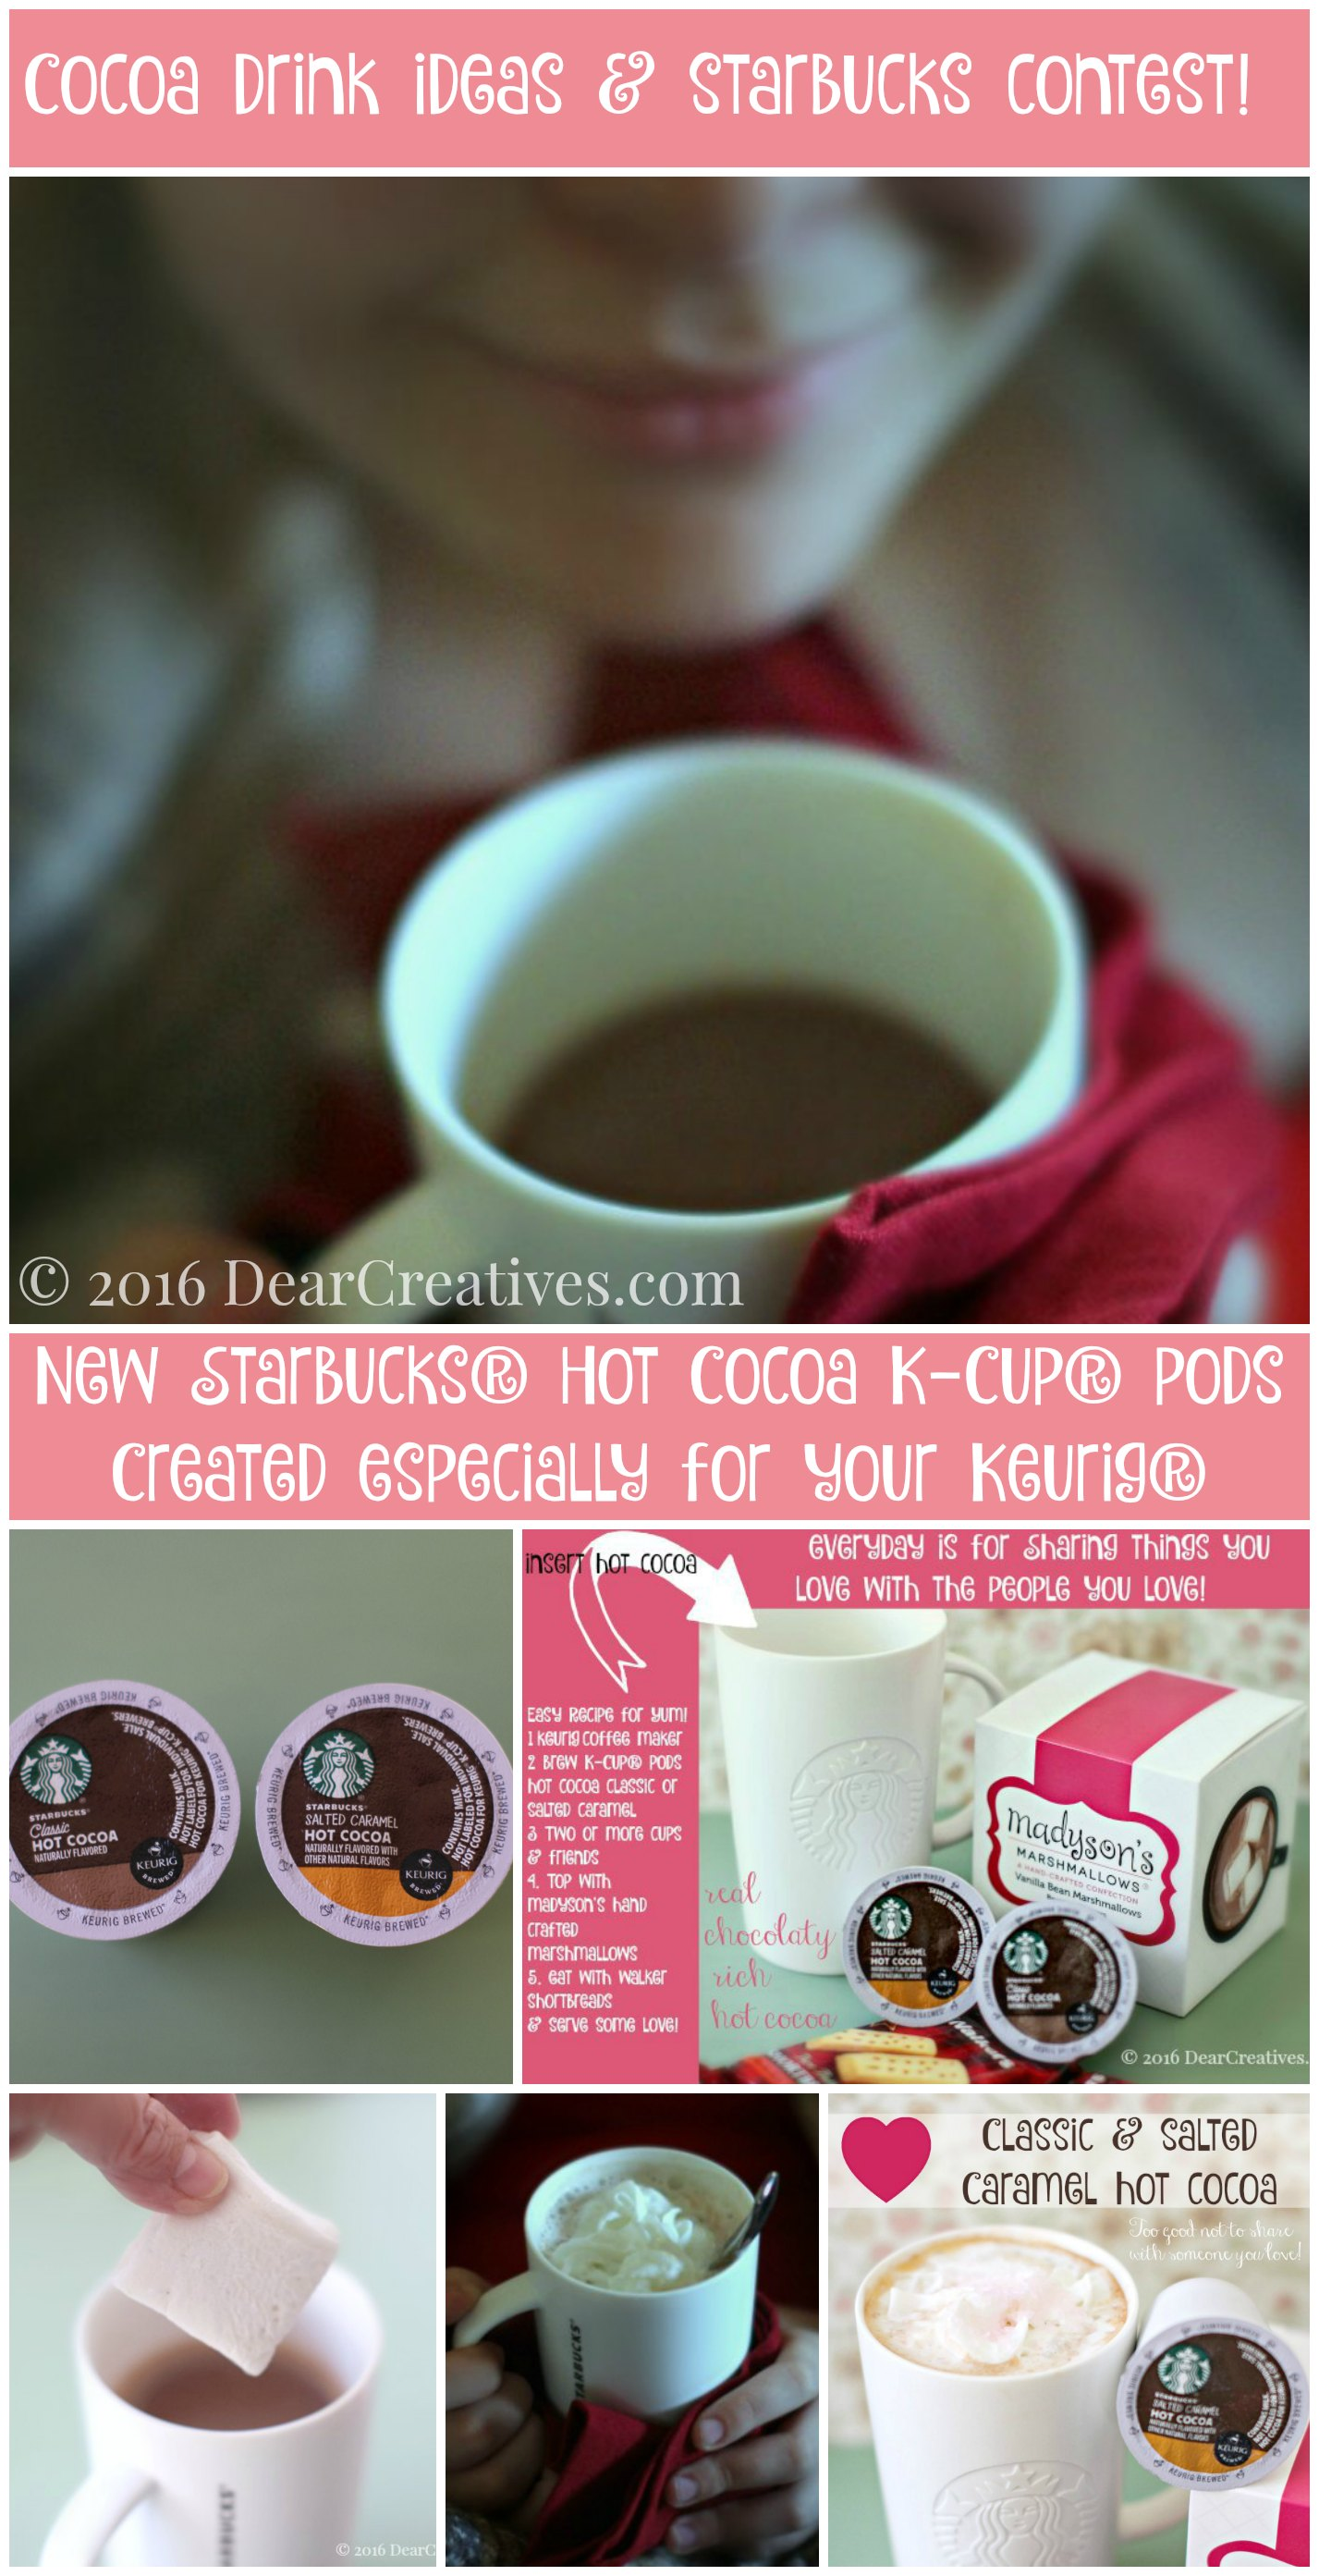 Drink Recipes cocoa drink ideas and starbucks coffee company contest